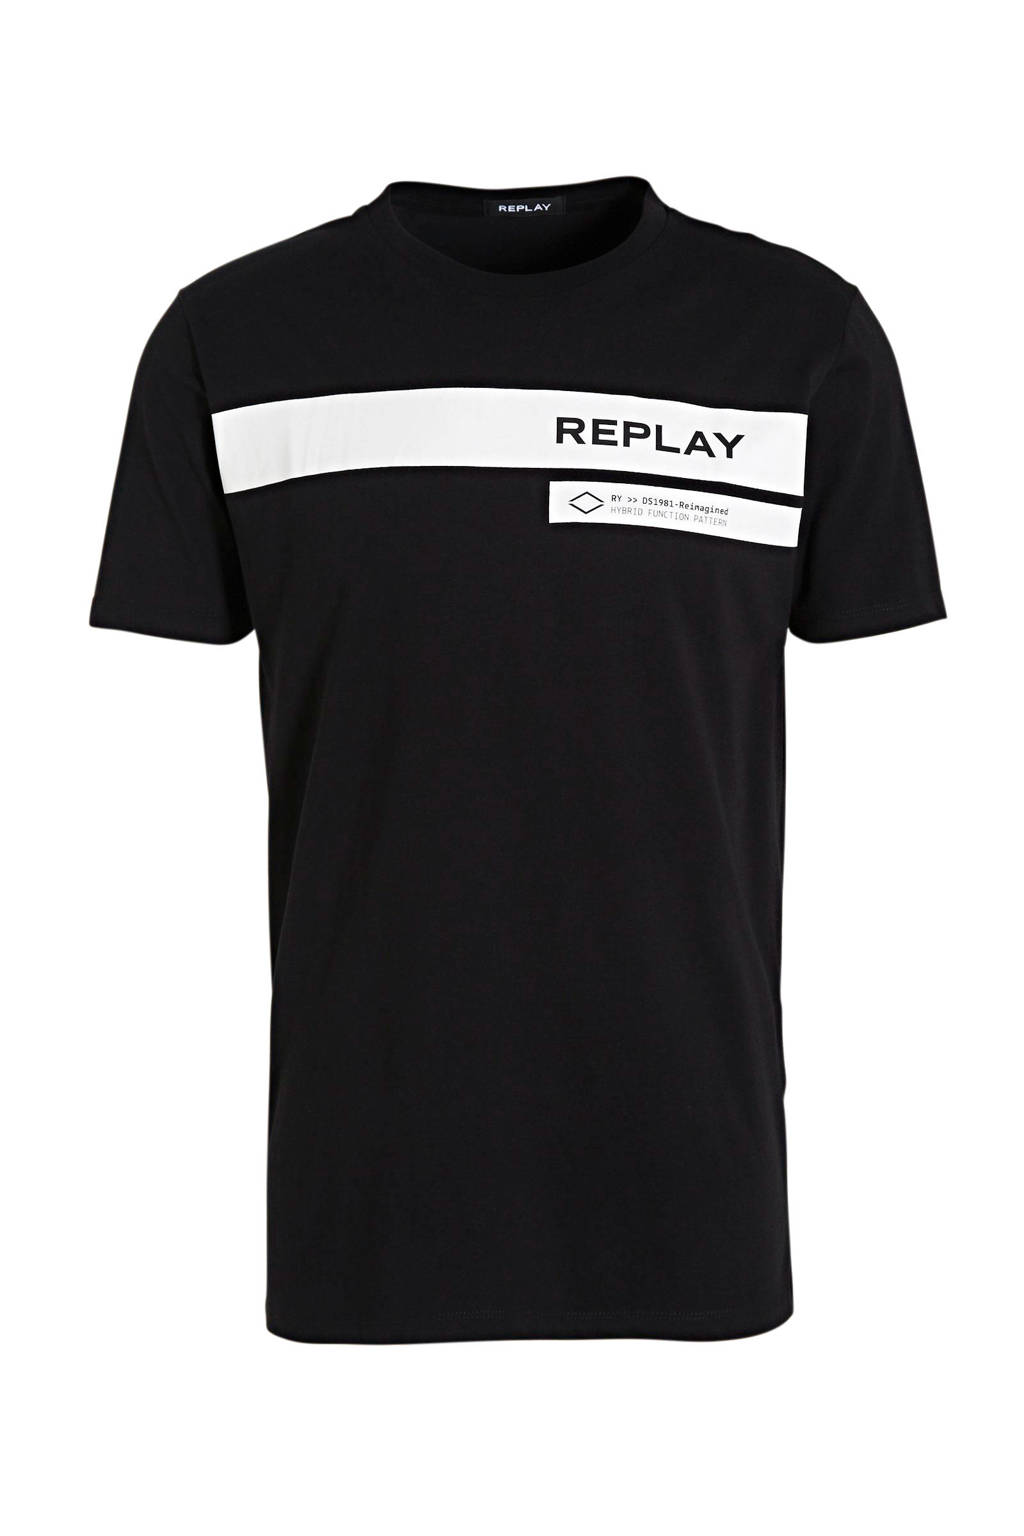 REPLAY T-shirt met logo zwart, Zwart